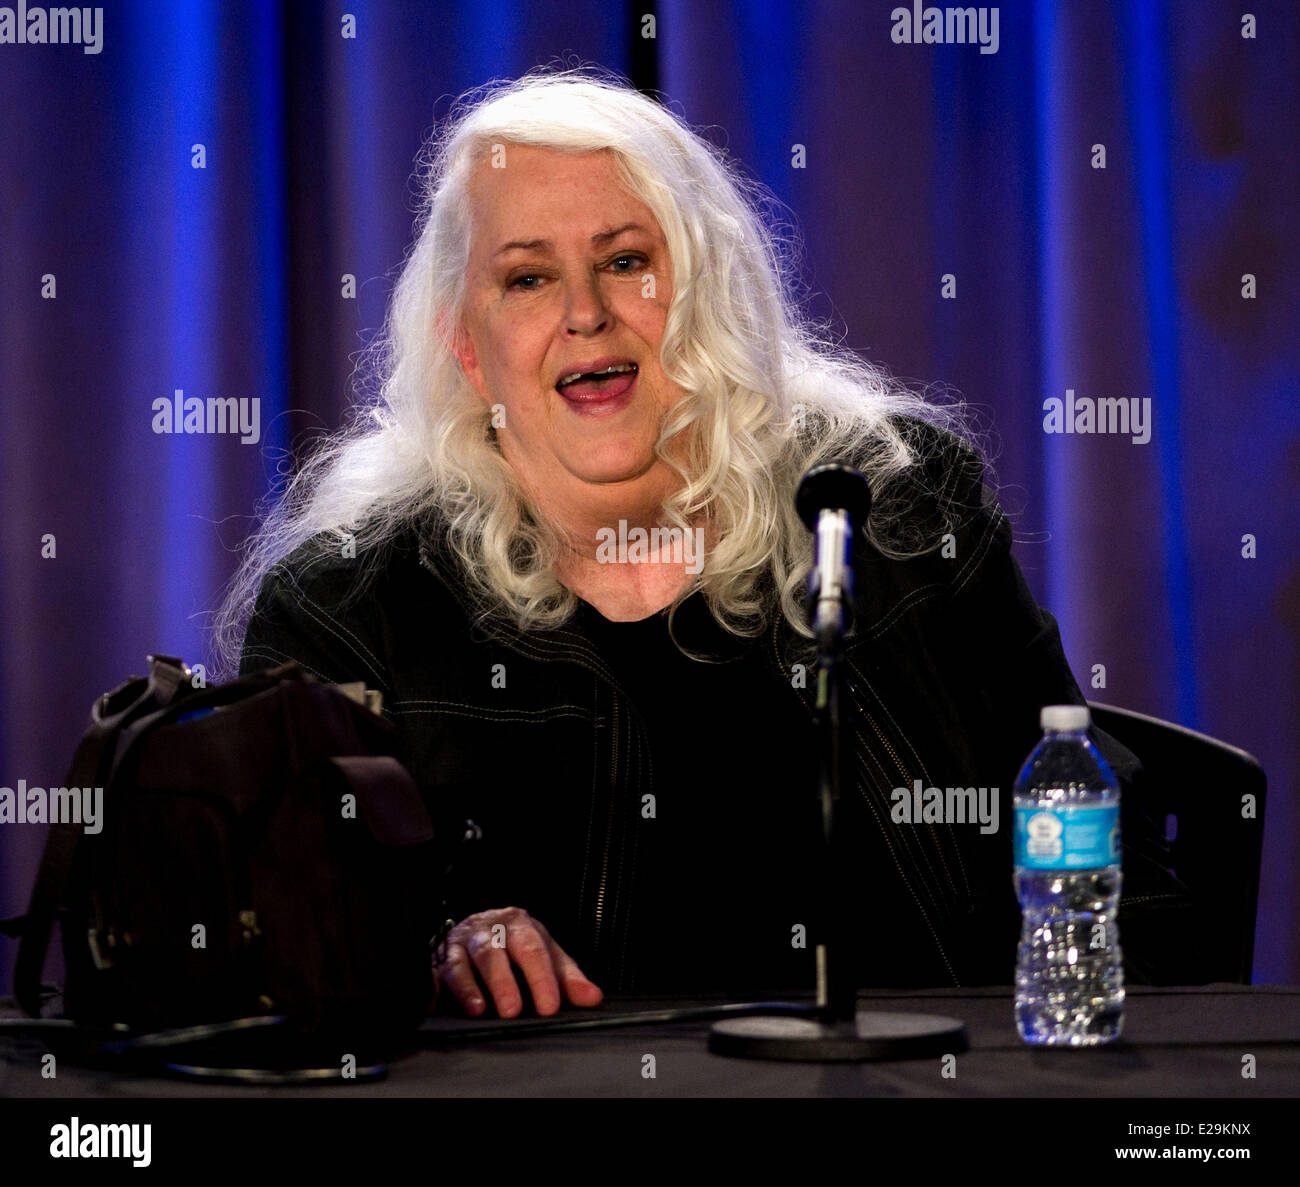 Los Angeles, California, USA. 17th June, 2014. Jefferson Airplane singer GRACE SLICK discusses her career in music - Stock Image